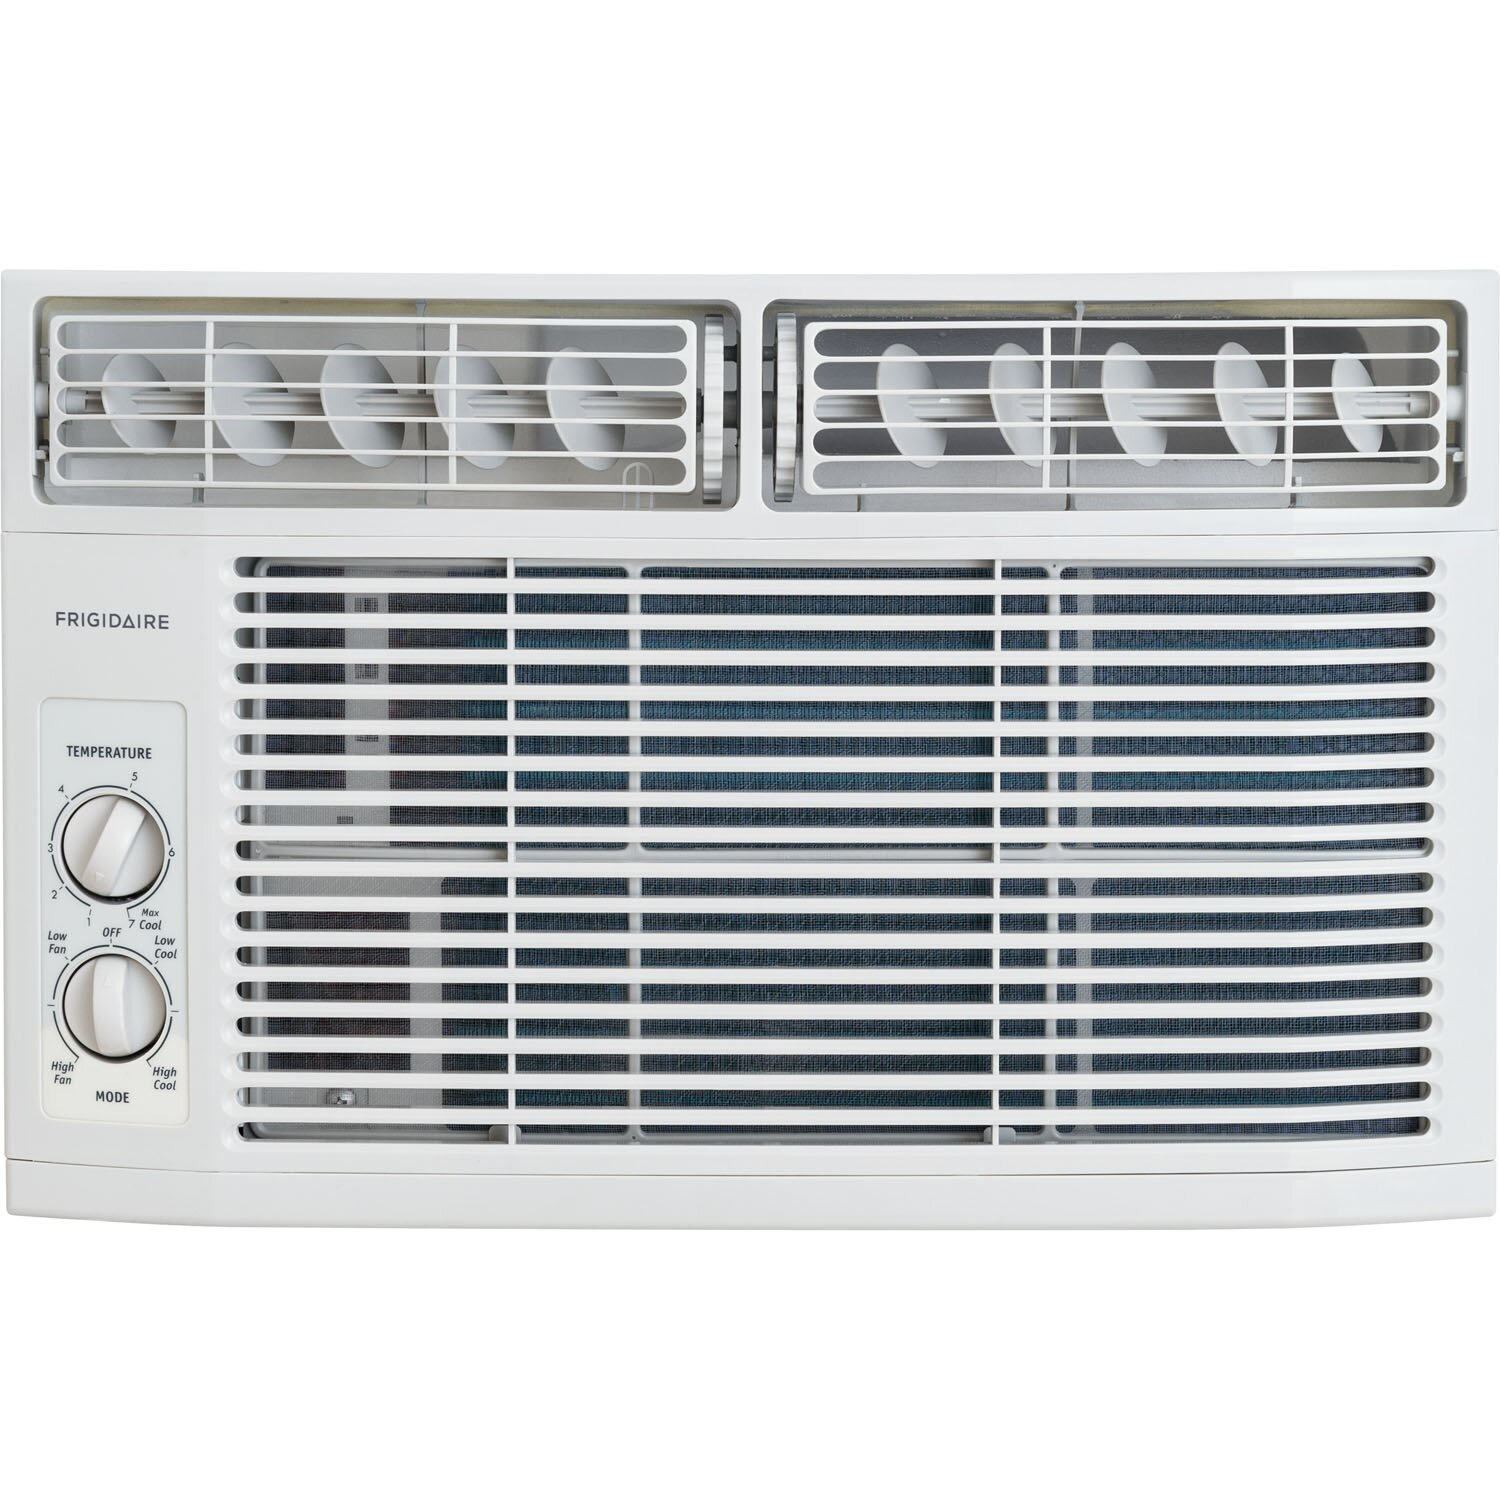 Frigidaire 6000 BTU Window Mounted Air Conditioner Wayfair #3C4D5B